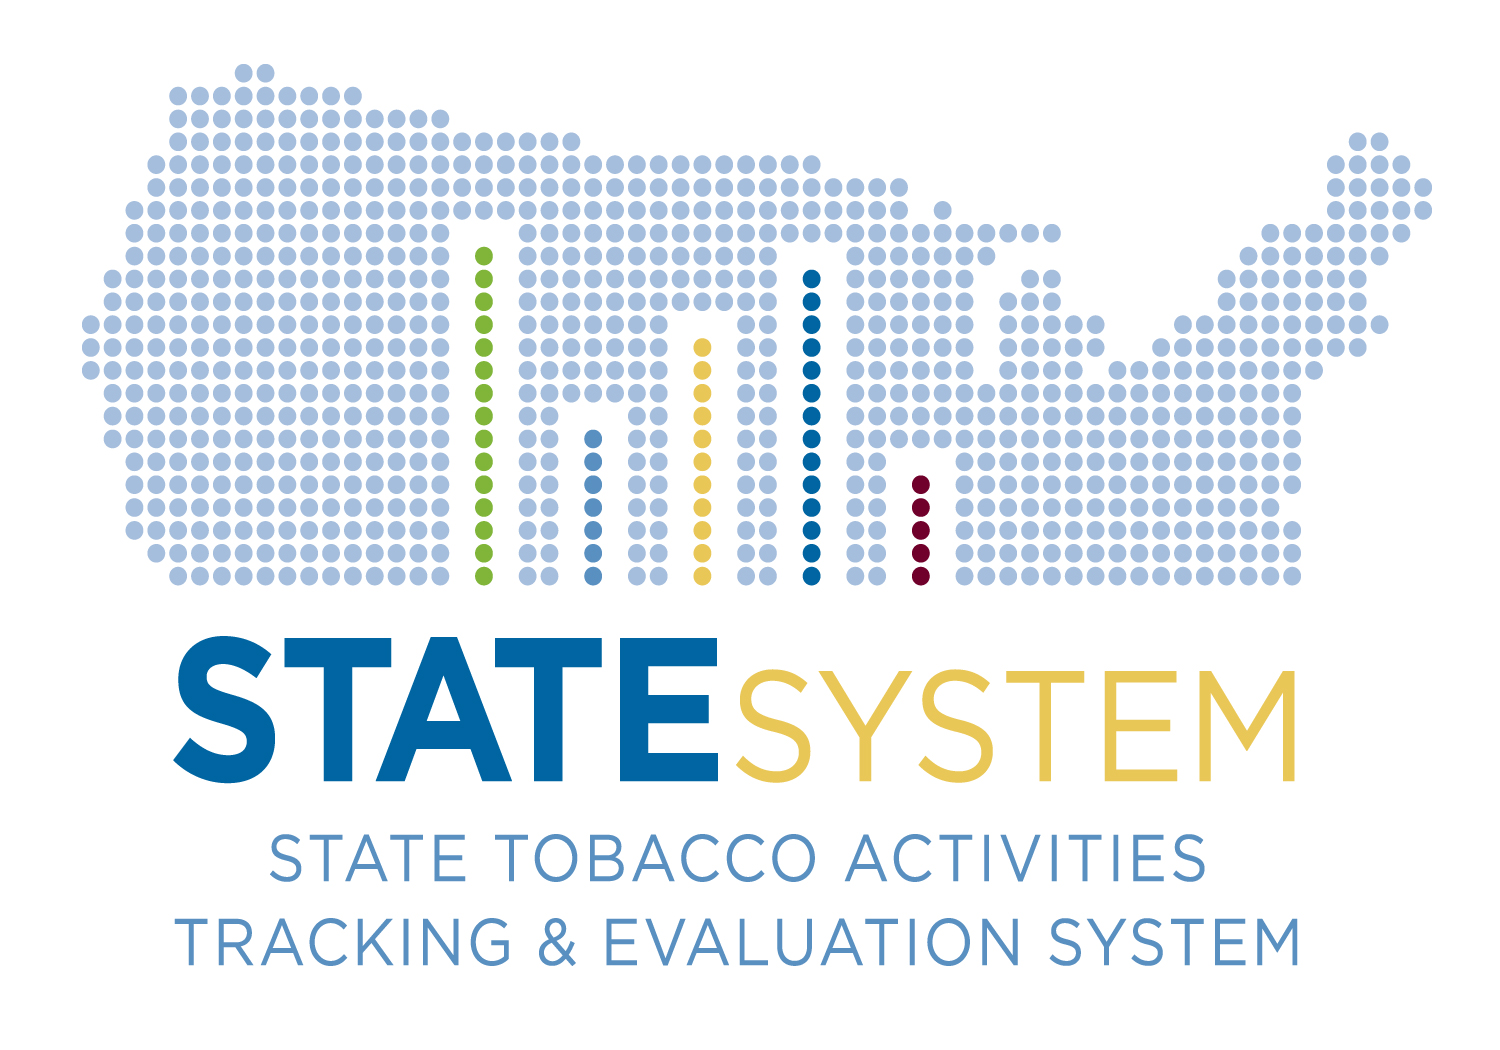 STATE SYSTEM - State Tobacco Activities Tracking & Evaluation System